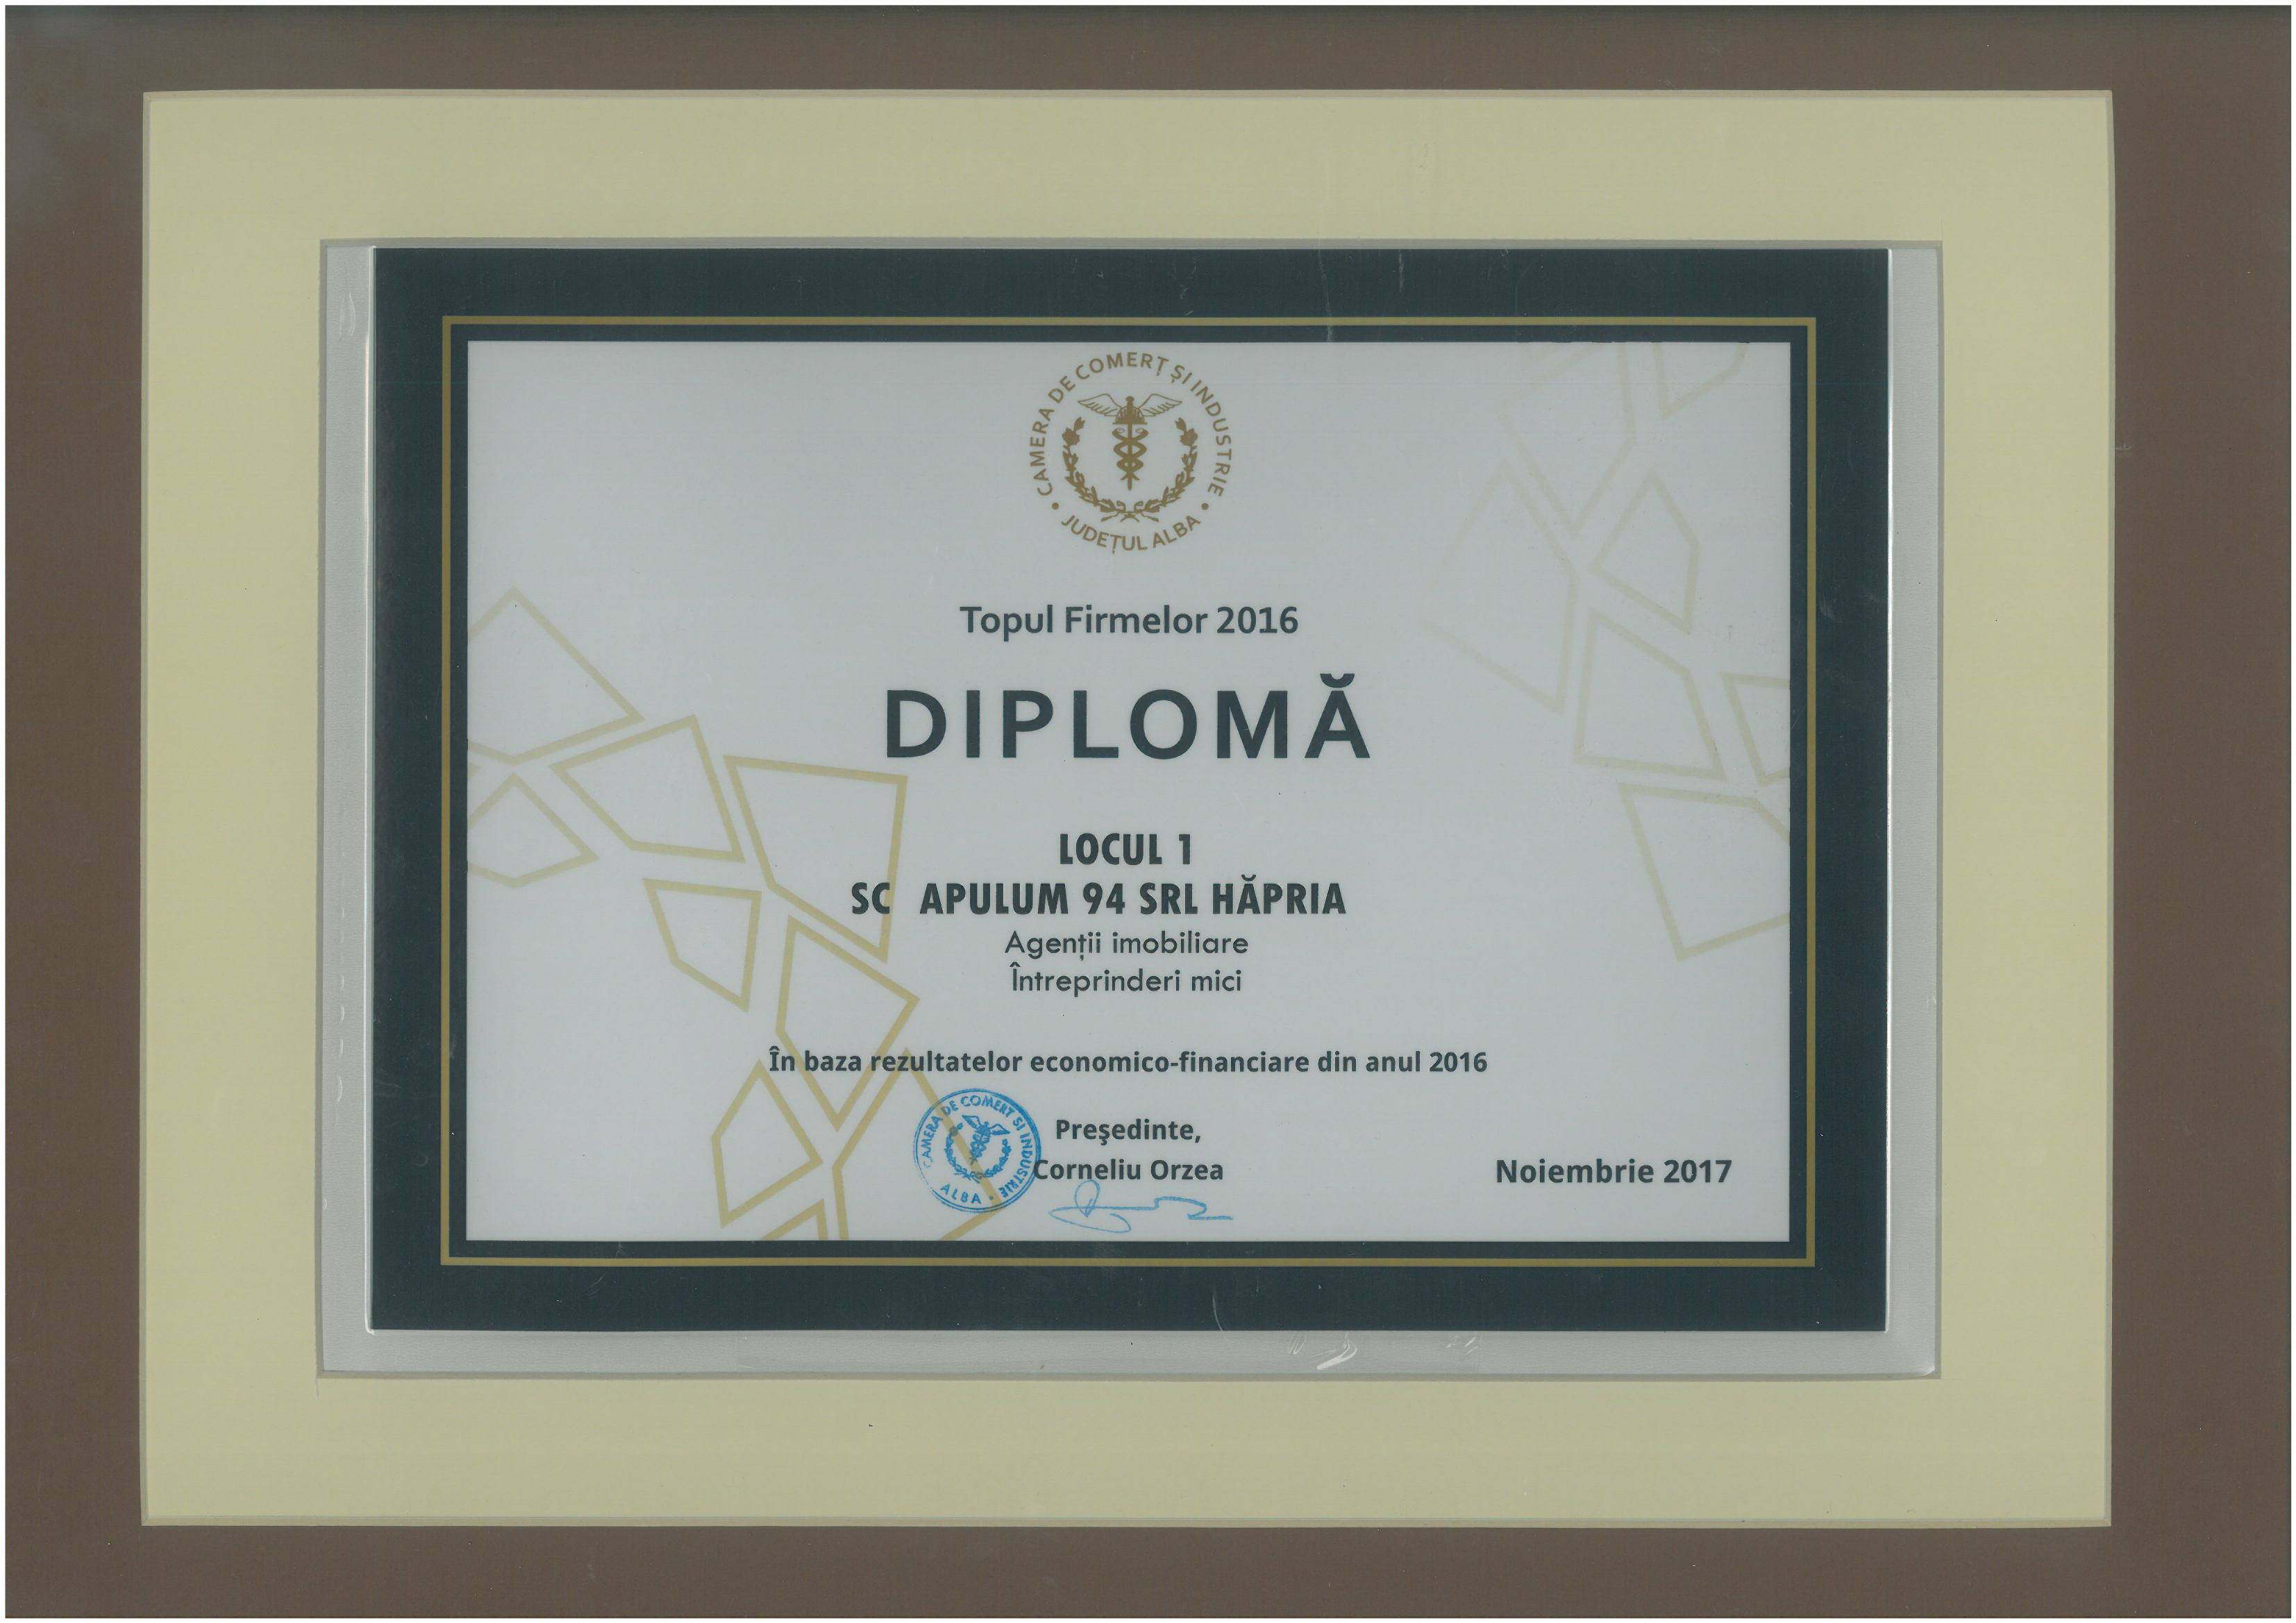 Diploma - Topul Firmelor - 2016